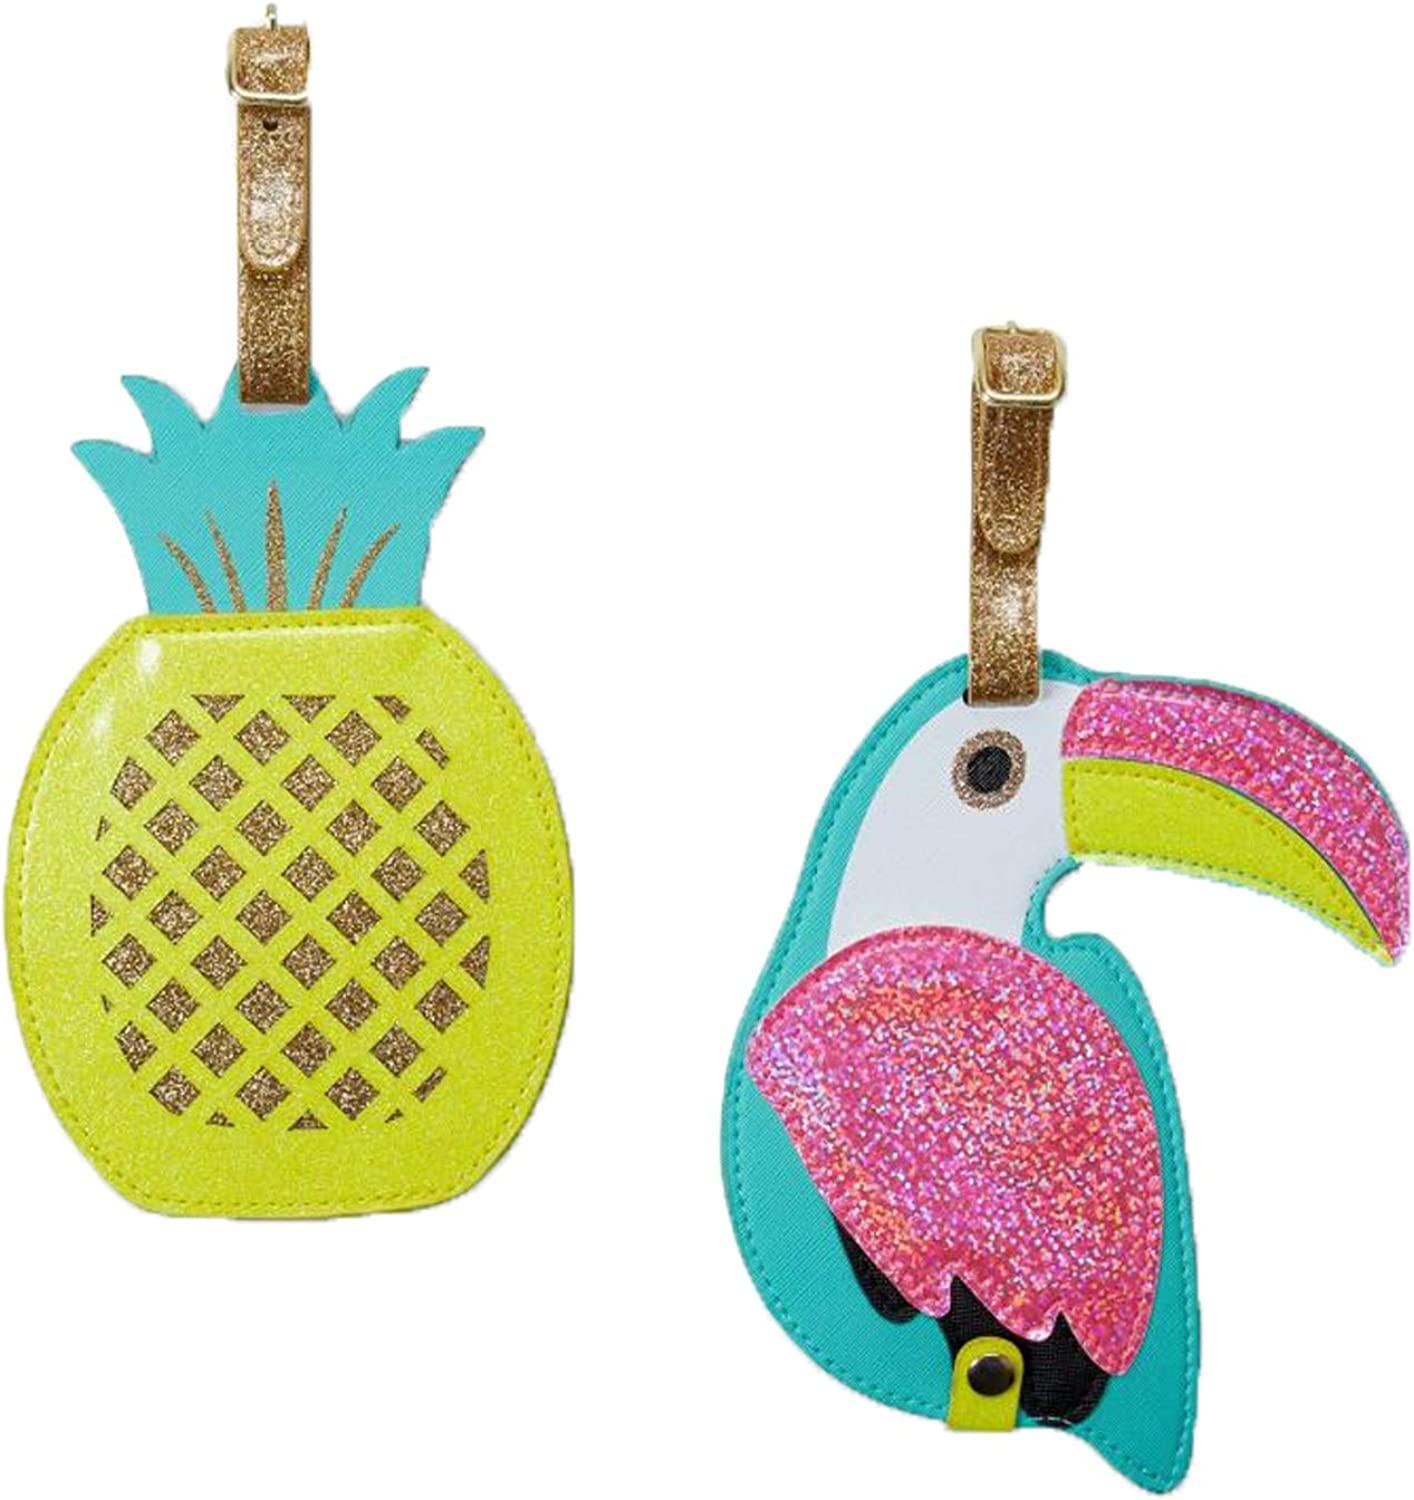 2 Pack Luggage Tags Toucans Pattern Handbag Tag For Suitcase Bag Accessories